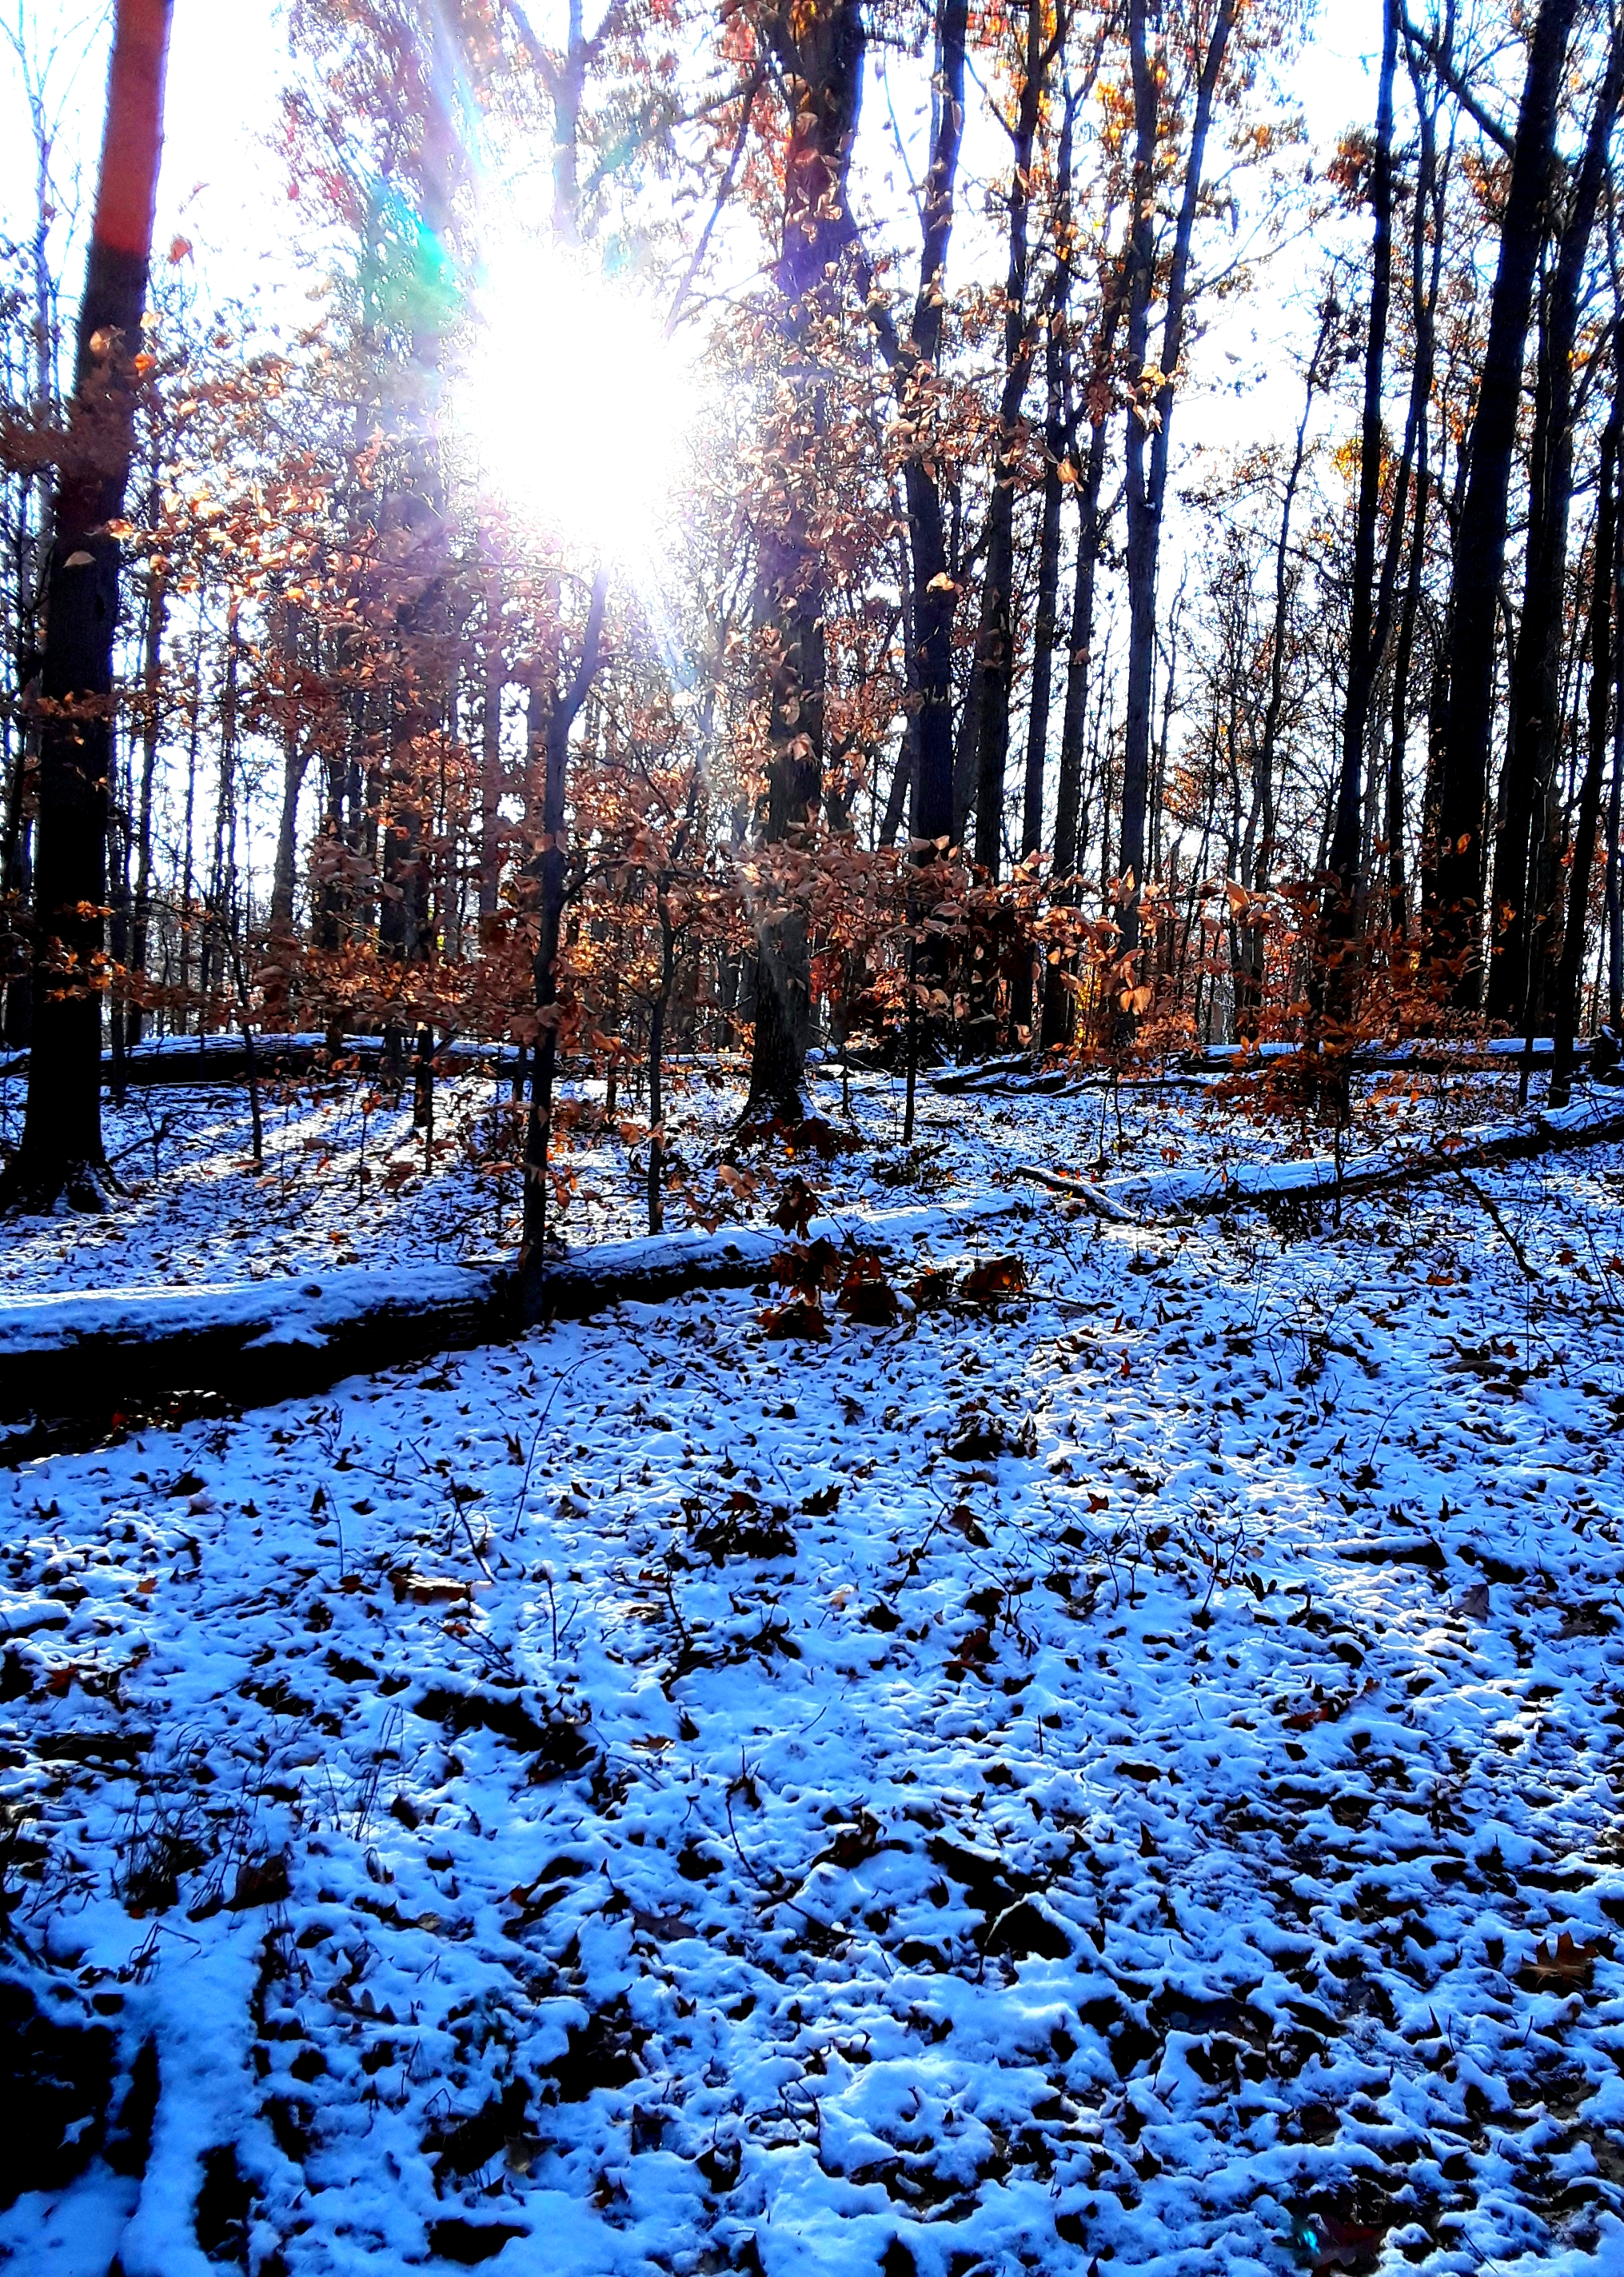 trees with fall foliage, and ground with snow